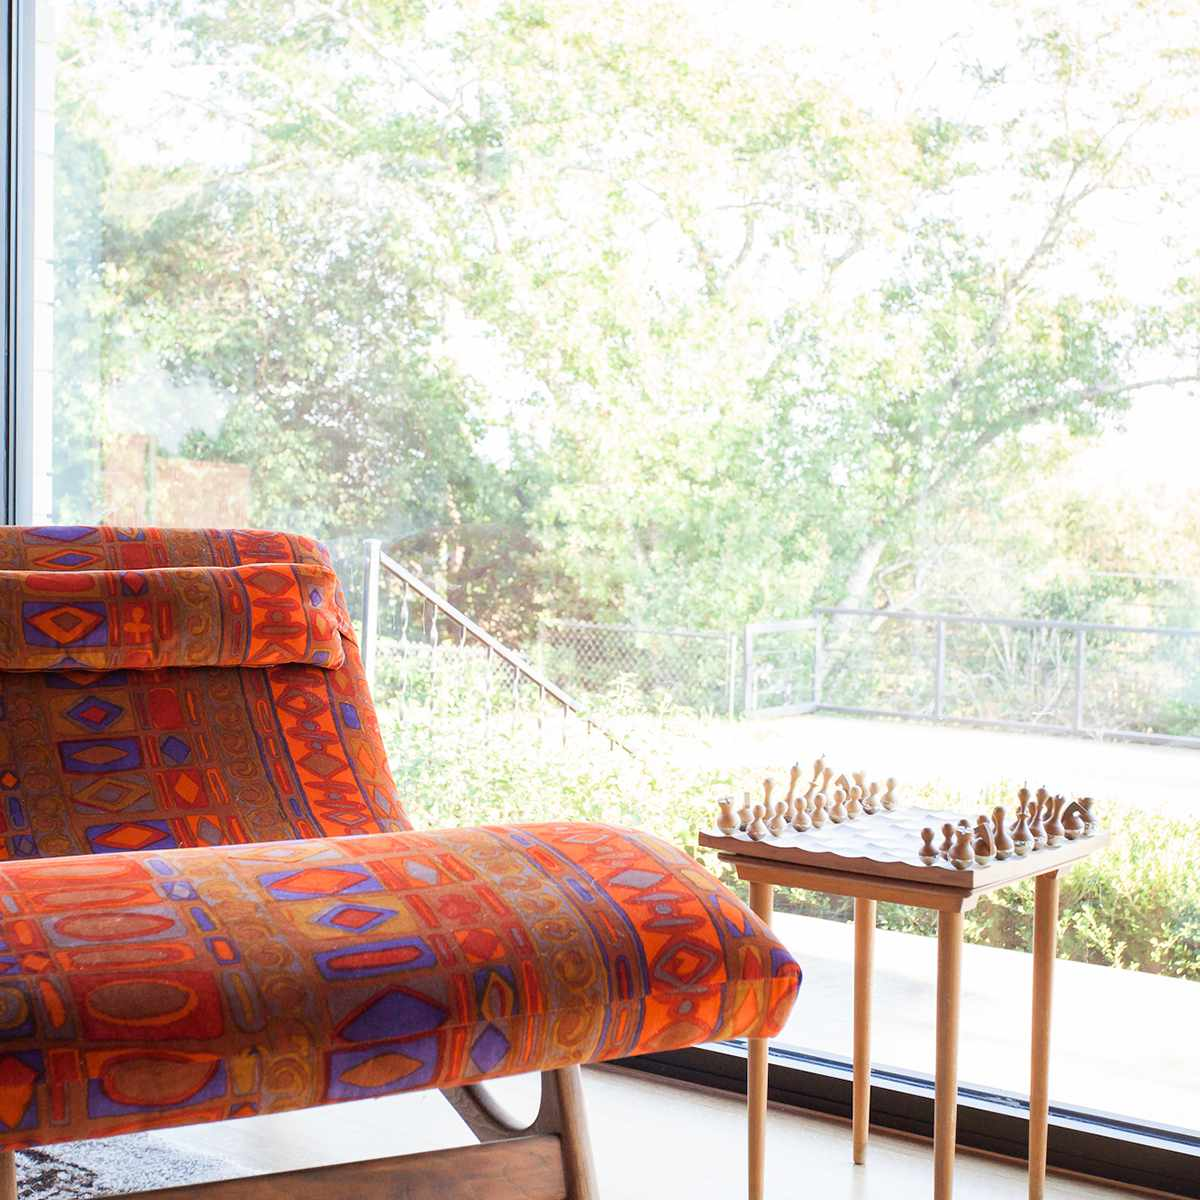 A printed chair next to a chess set